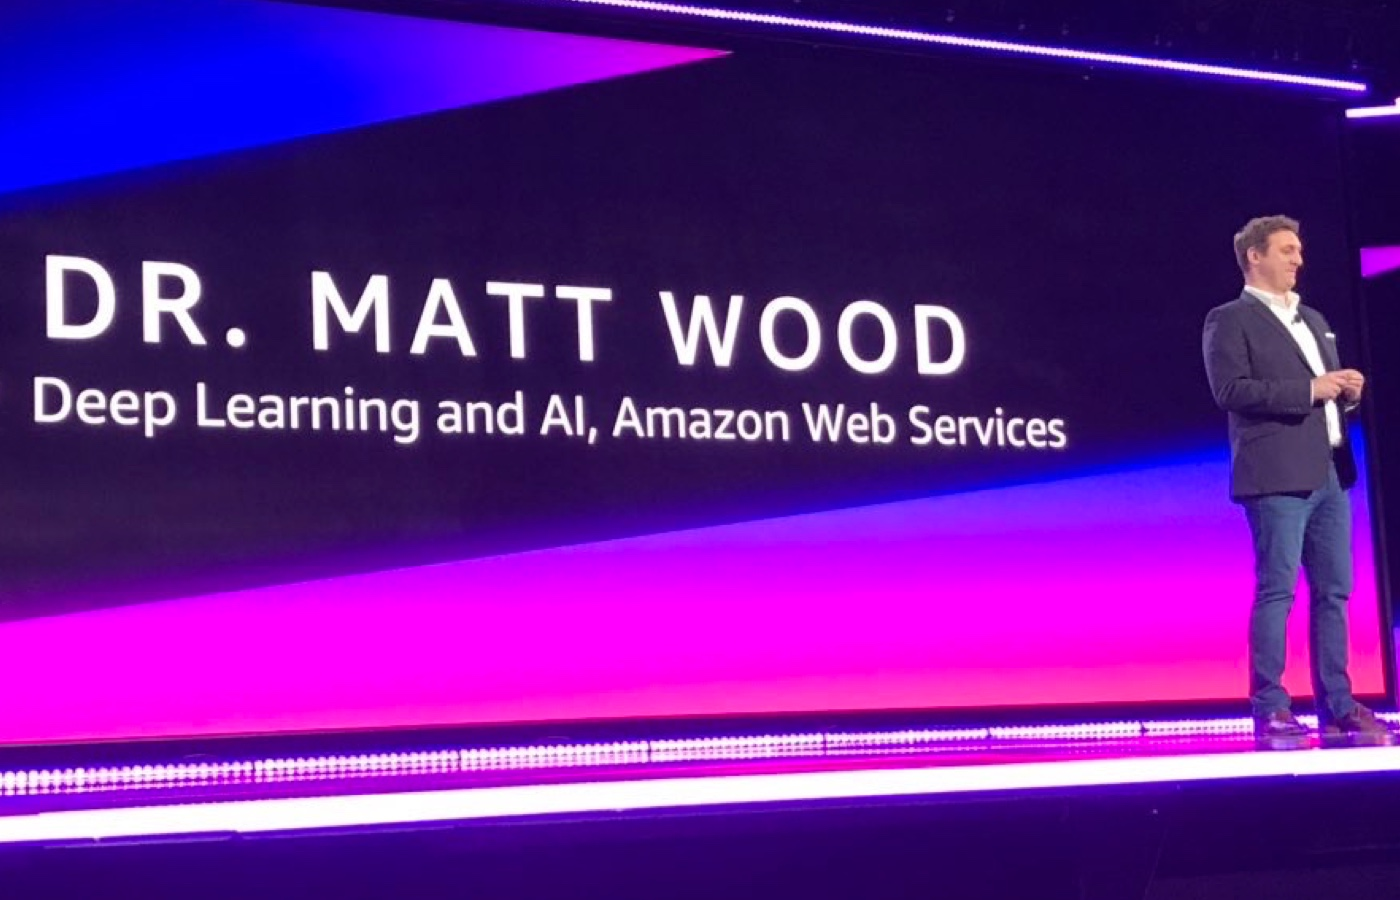 Keynote speaker at the AWS re:invent conference